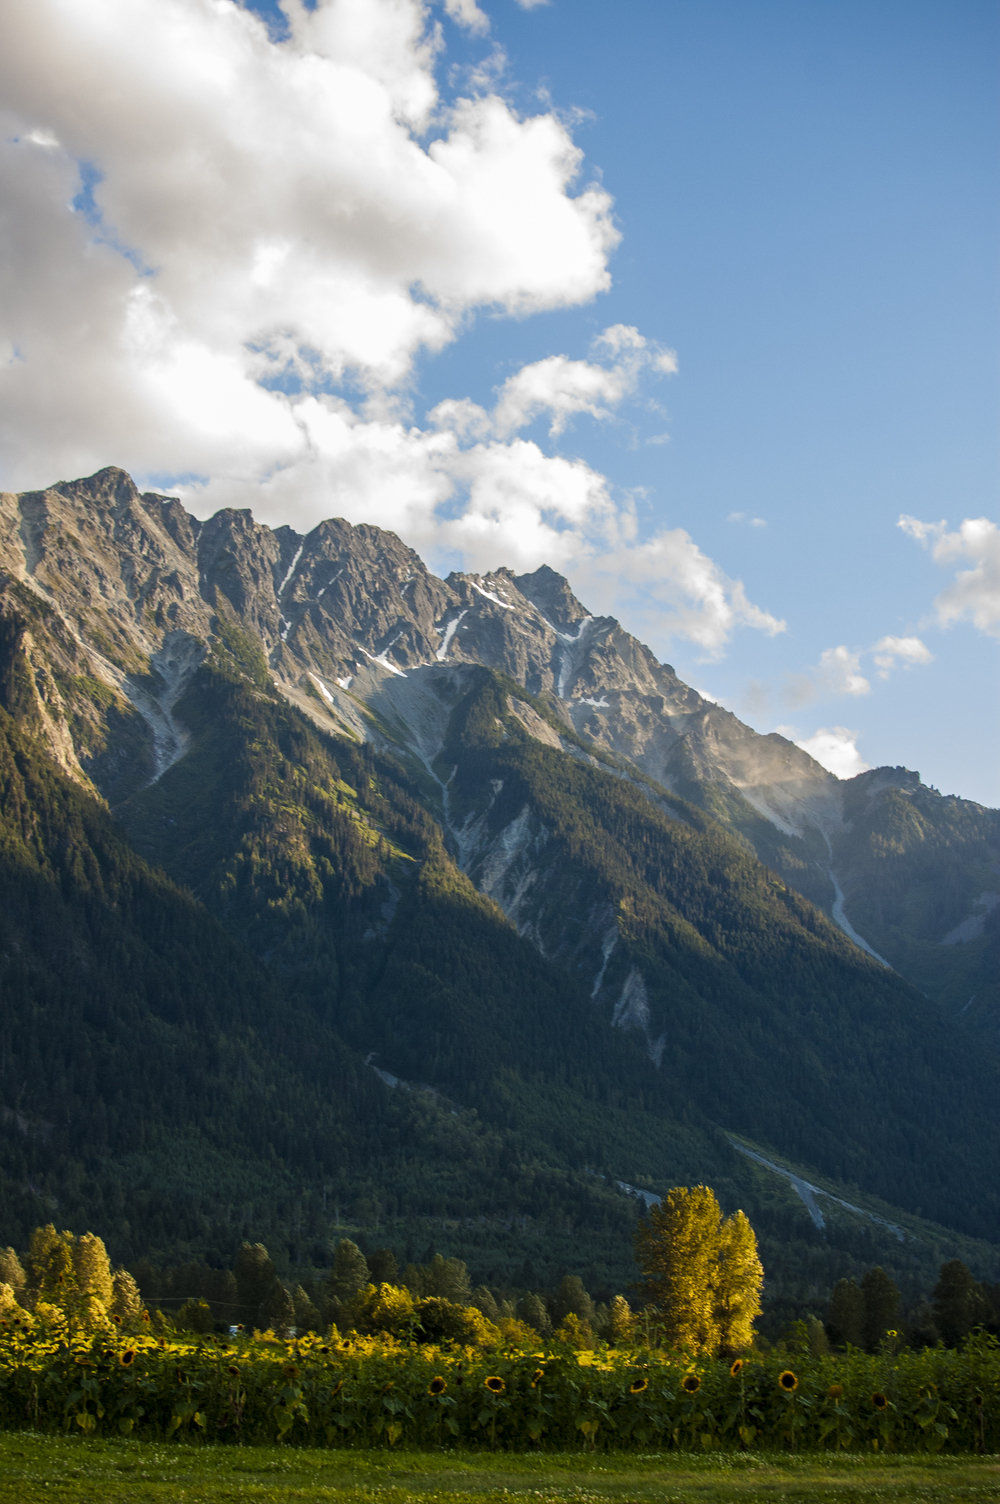 Fields & Mount Currie at North Arm Farm in Pemberton, British Columbia